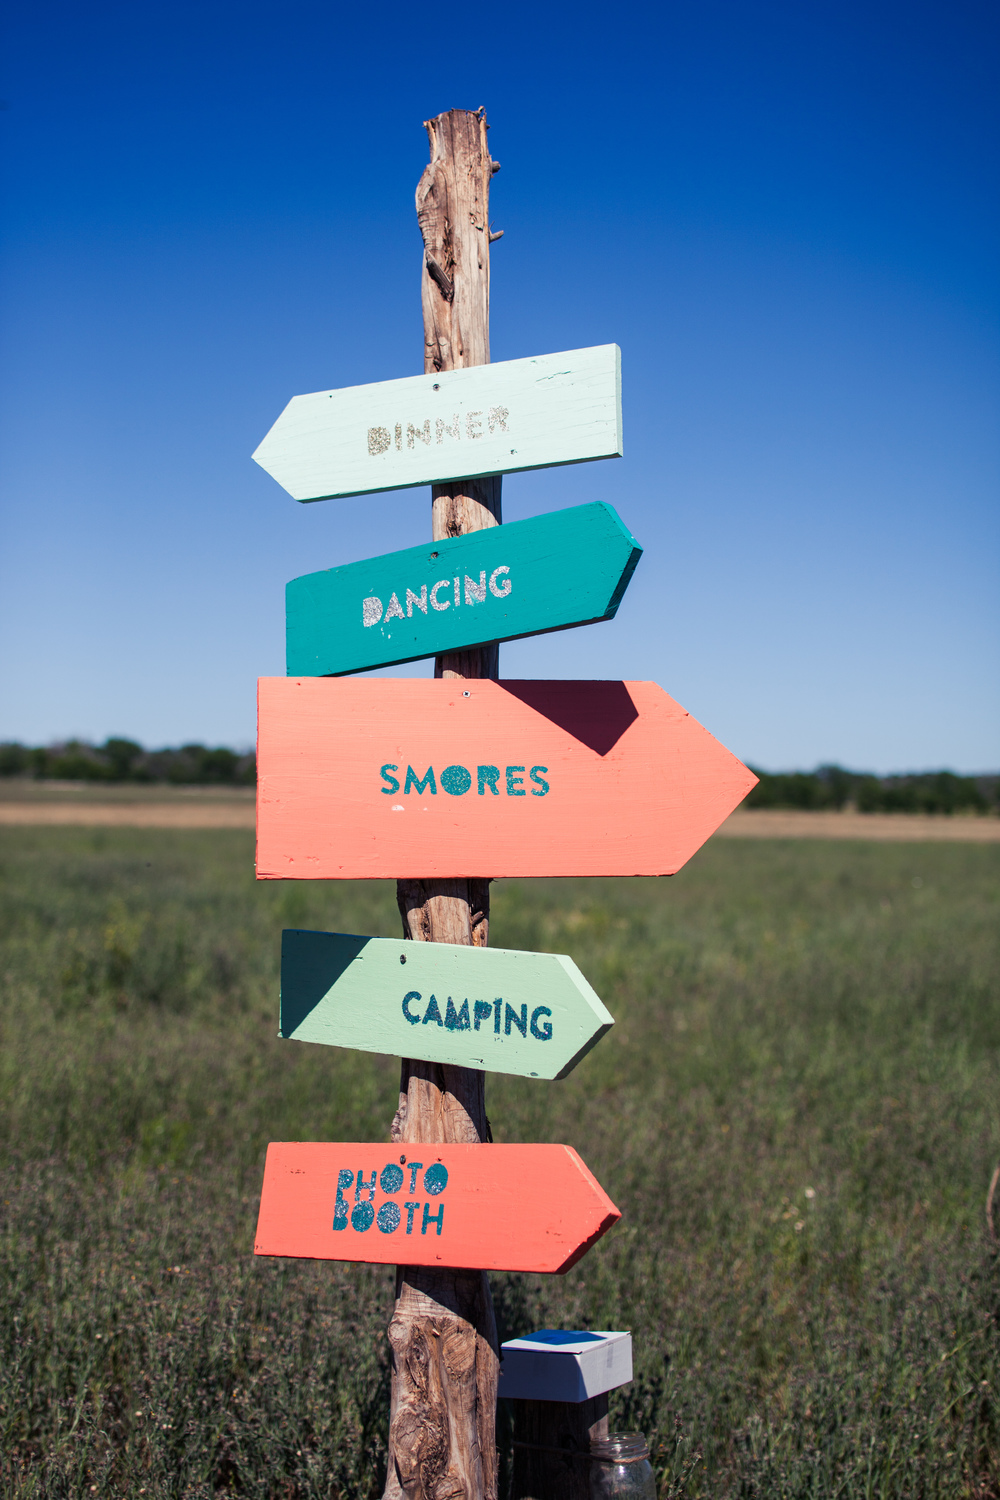 Paige-Newton-Photography-Wedding-Details-Cute-Signs.jpg